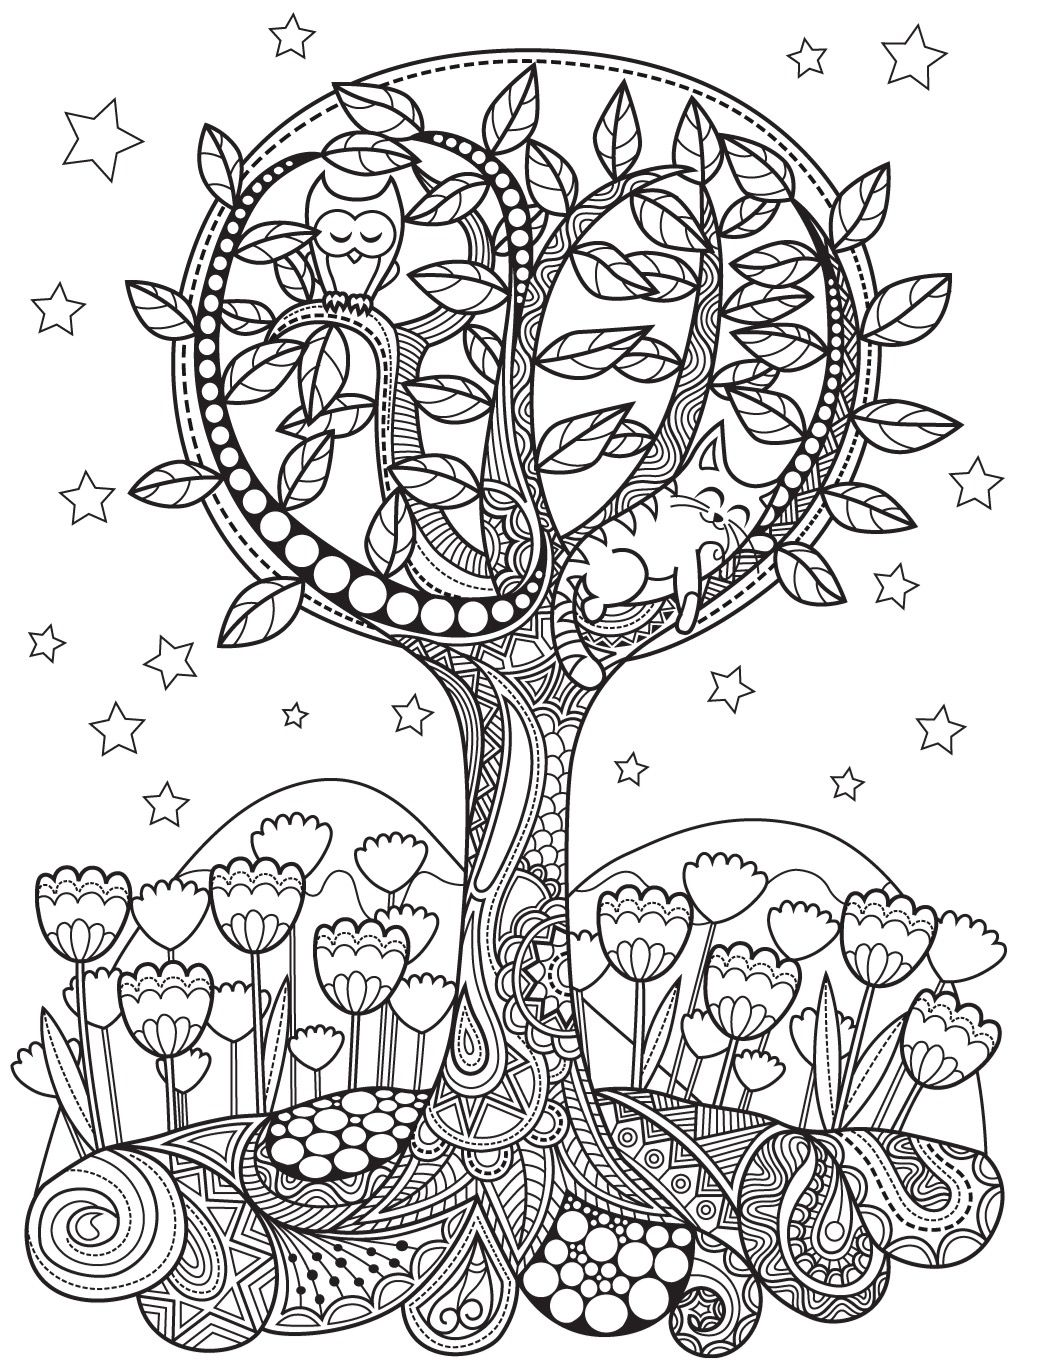 Gardens Colorish Coloring Book App For Adults Mandala Relax By Goodsofttech Coloring Book App Animal Coloring Pages Cute Coloring Pages